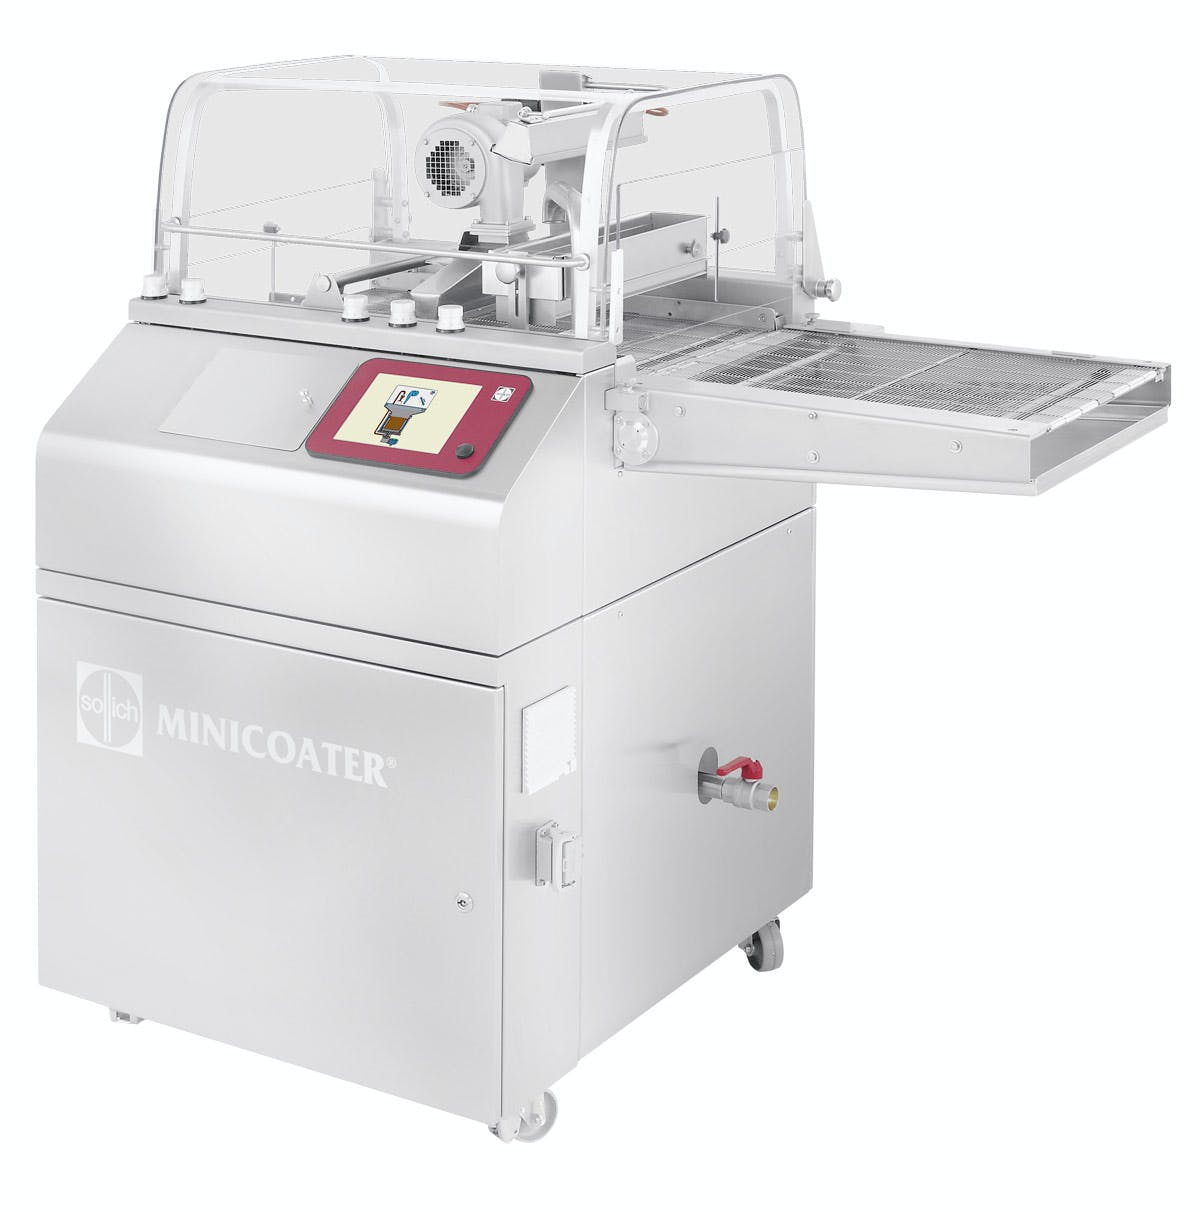 Sollich Minicoater MC 320/420 Chocolate enrober sold by Sollich North America